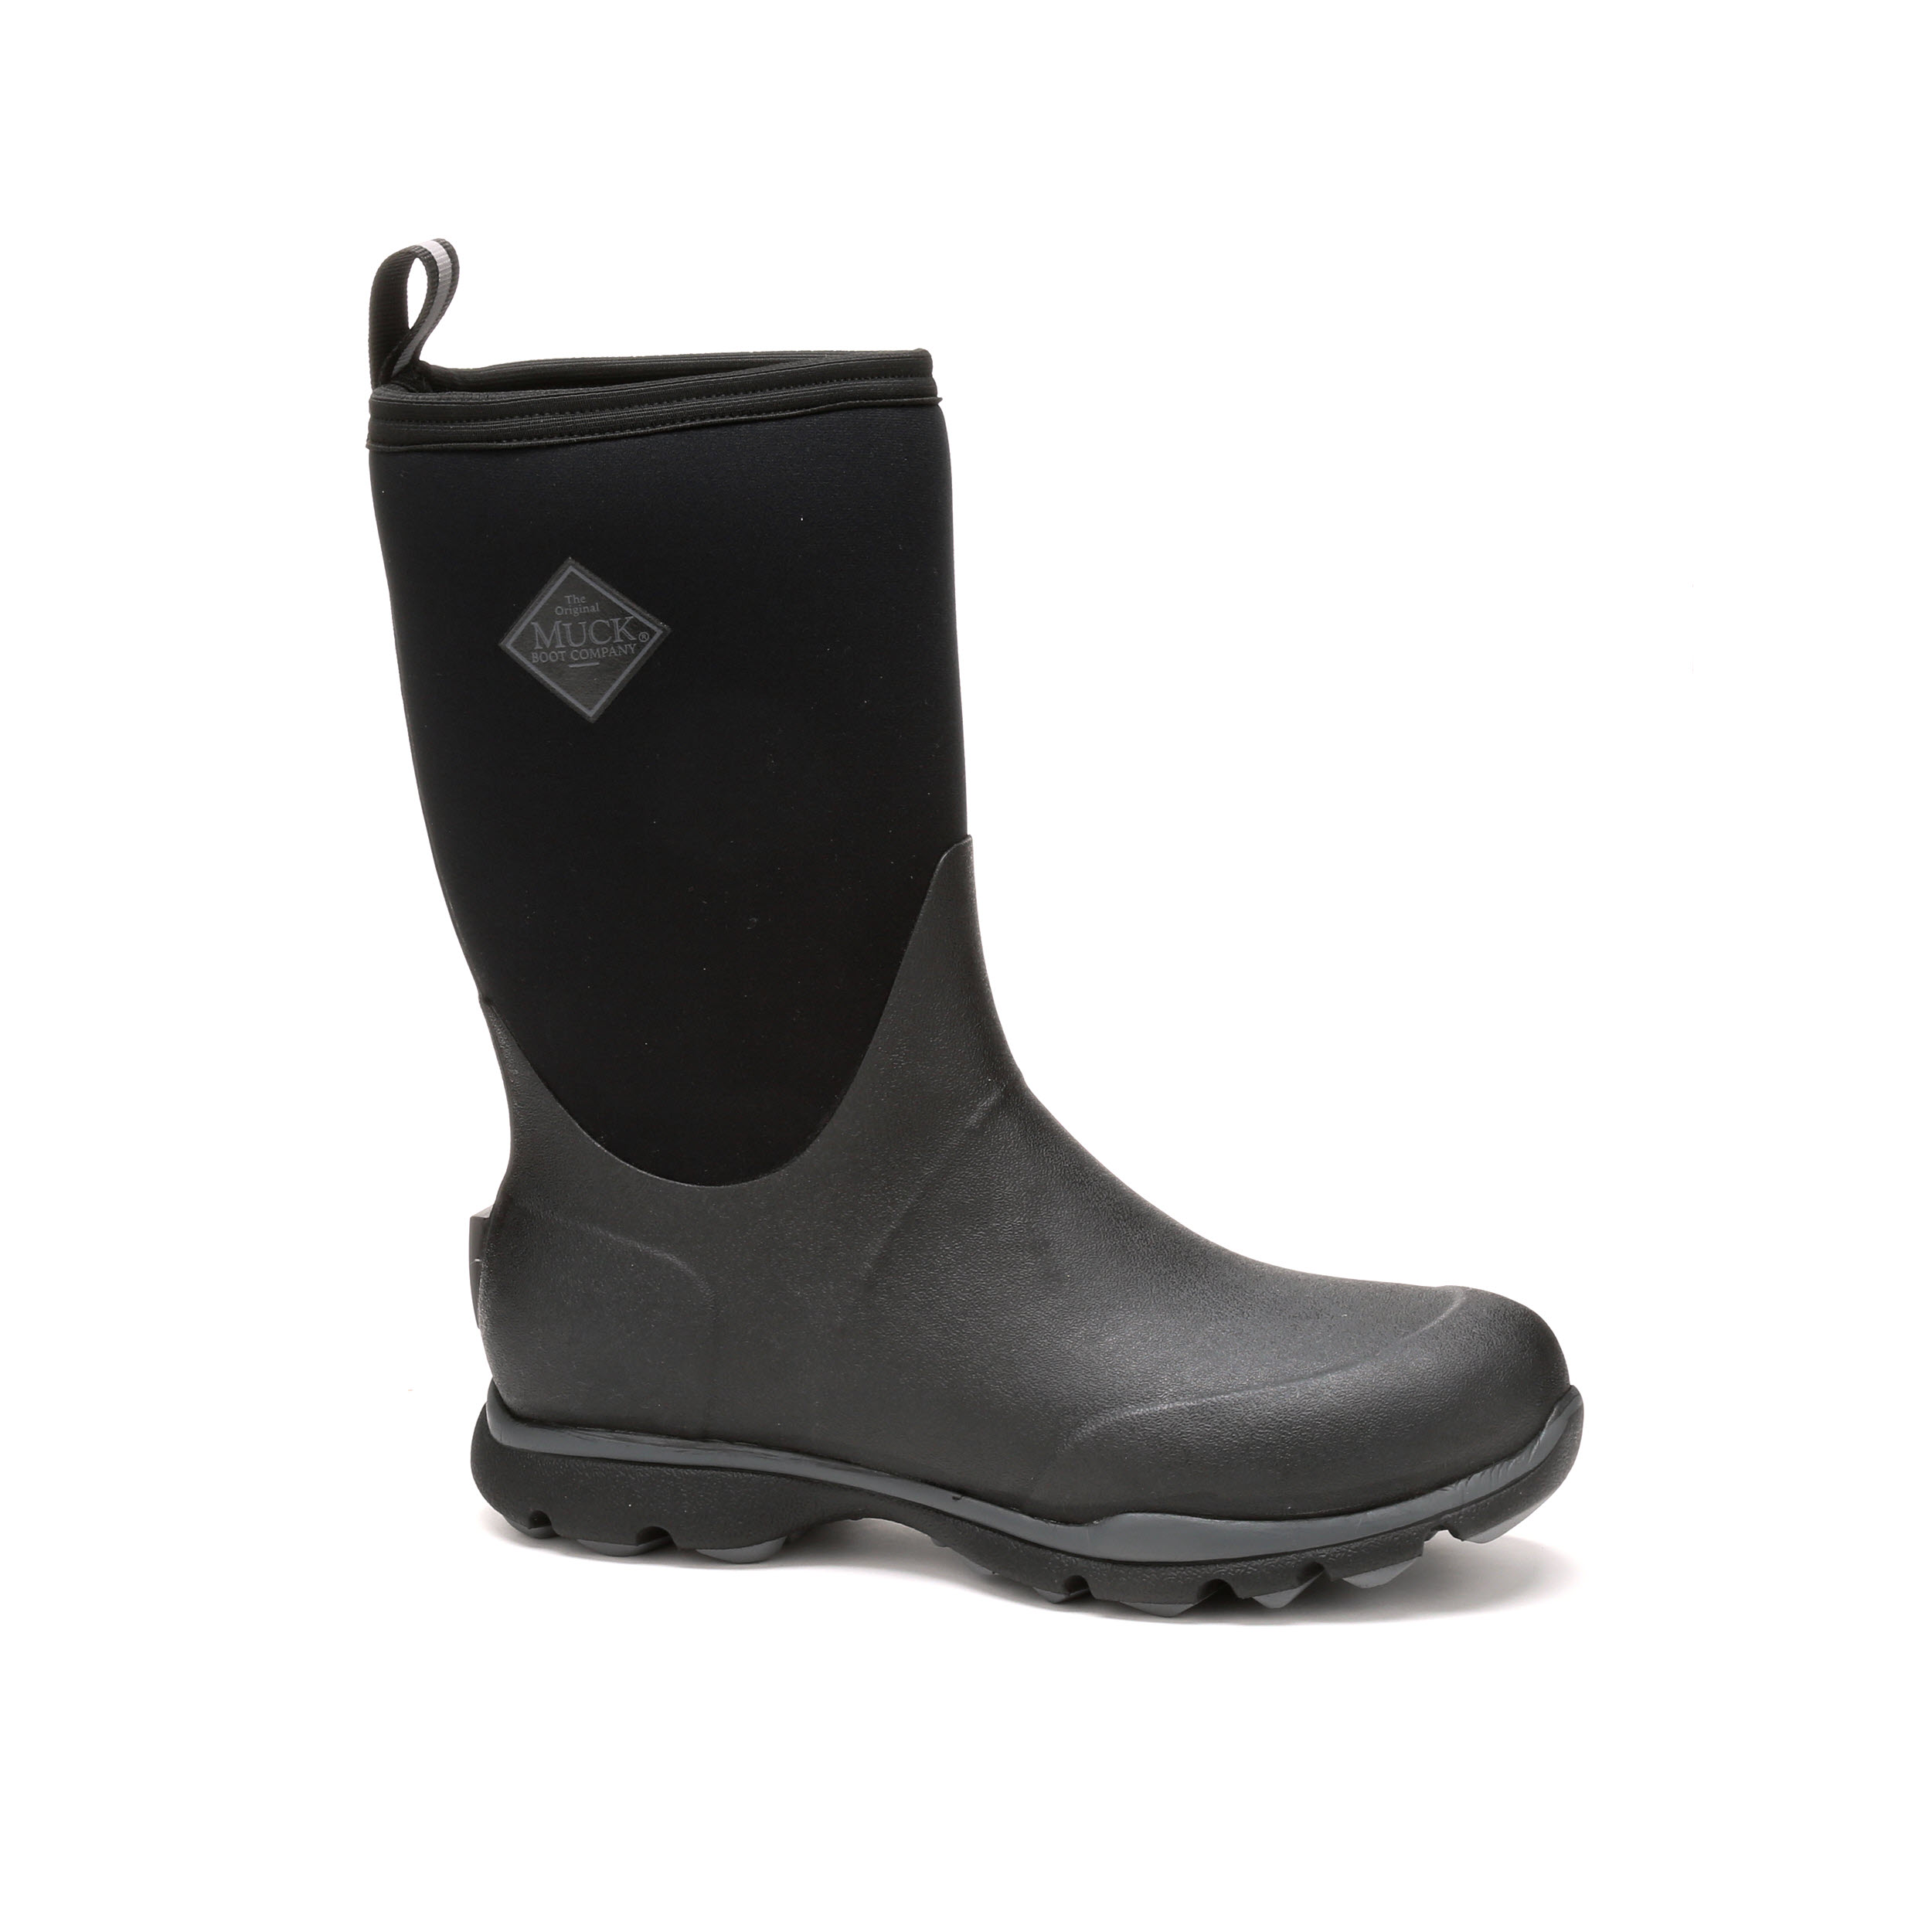 Waterproof Muck Boots | Muck Insulated Boots | Buy Muck Boots